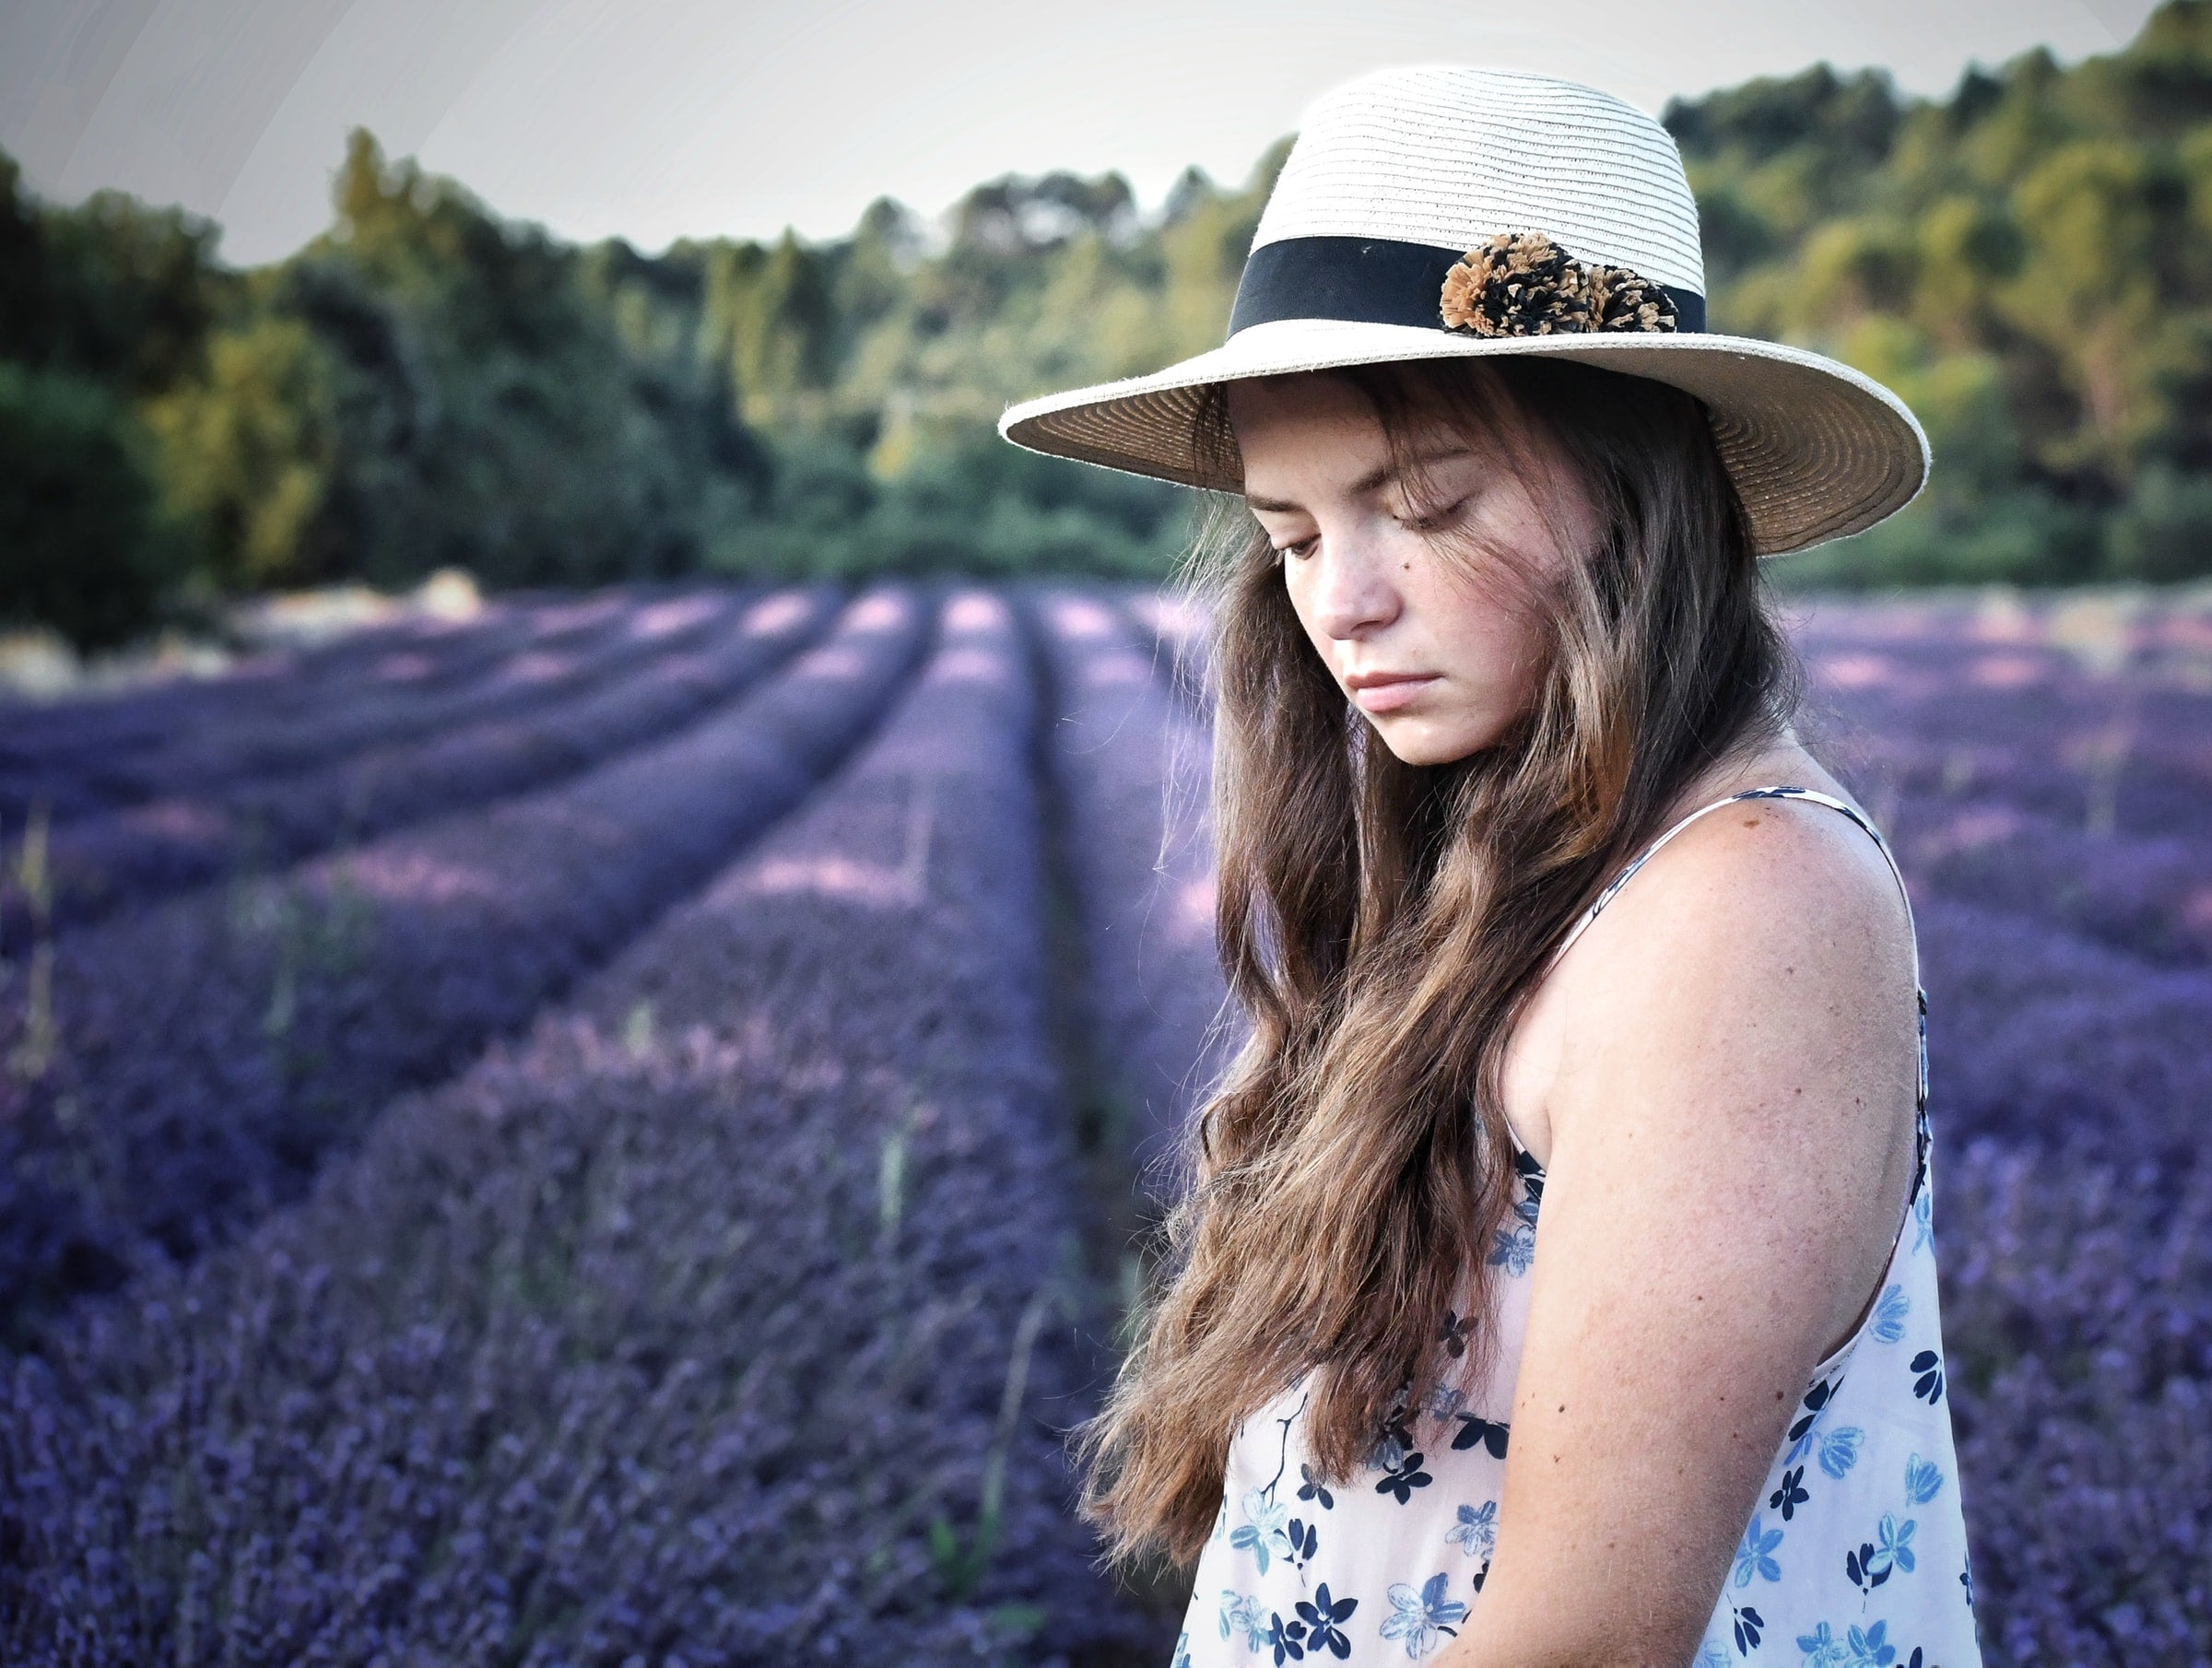 girl with hat in lavender field